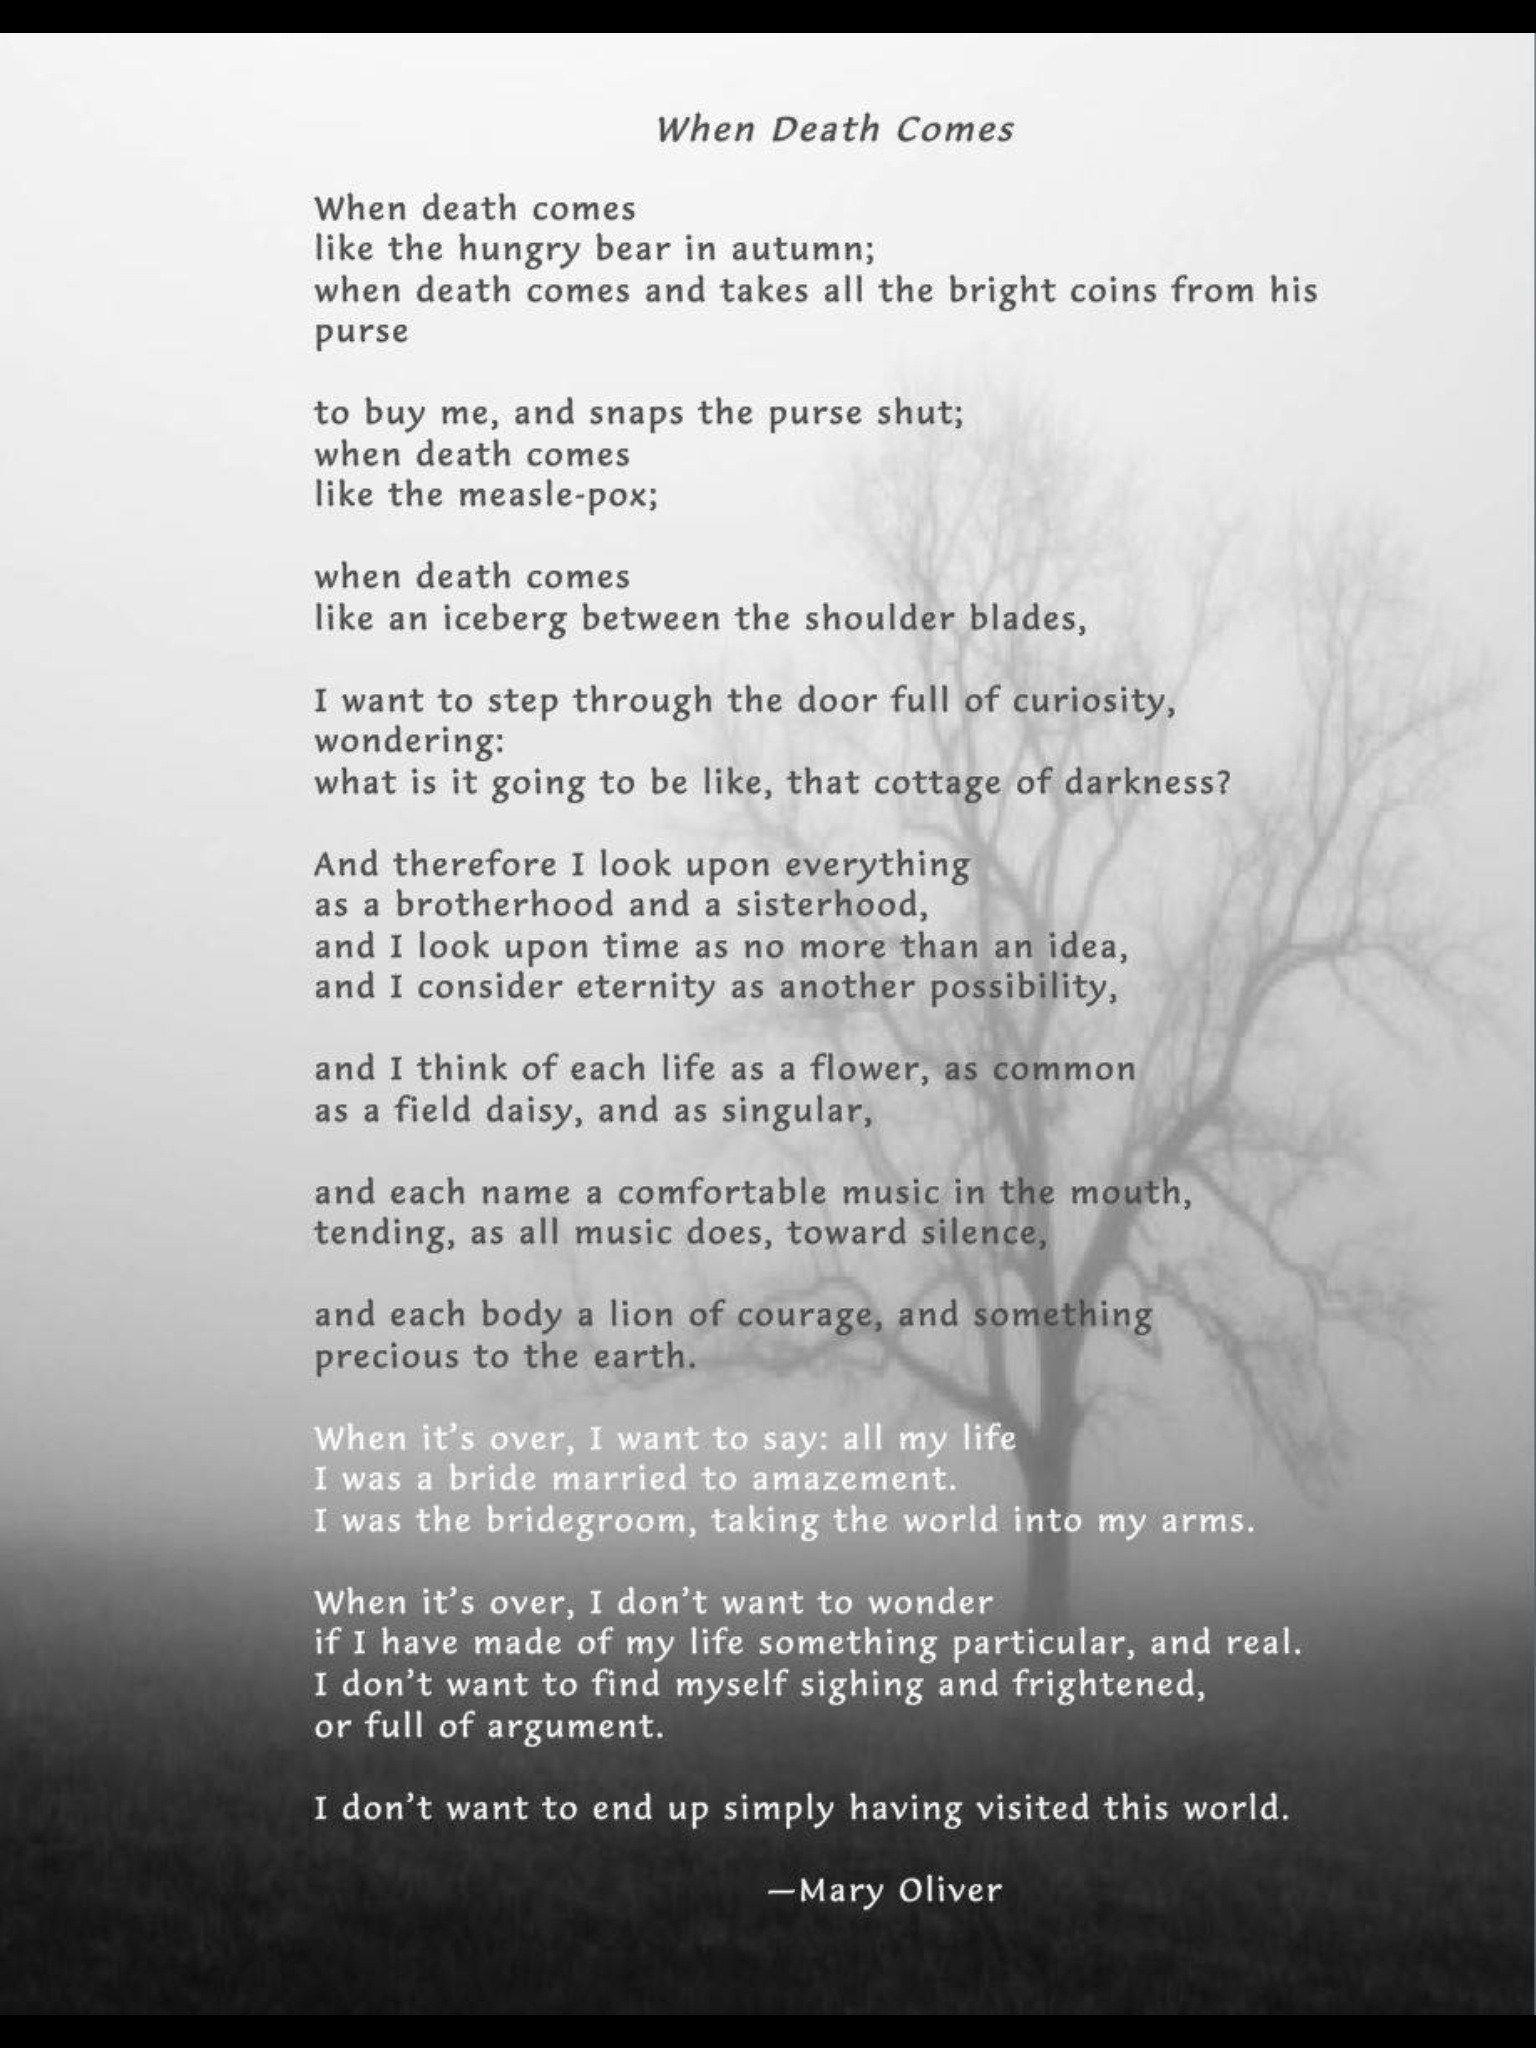 when death comes mary oliver essay A 4 pages analytical essay that explicates the poem when death comes by mary oliver no additional sources are cited.